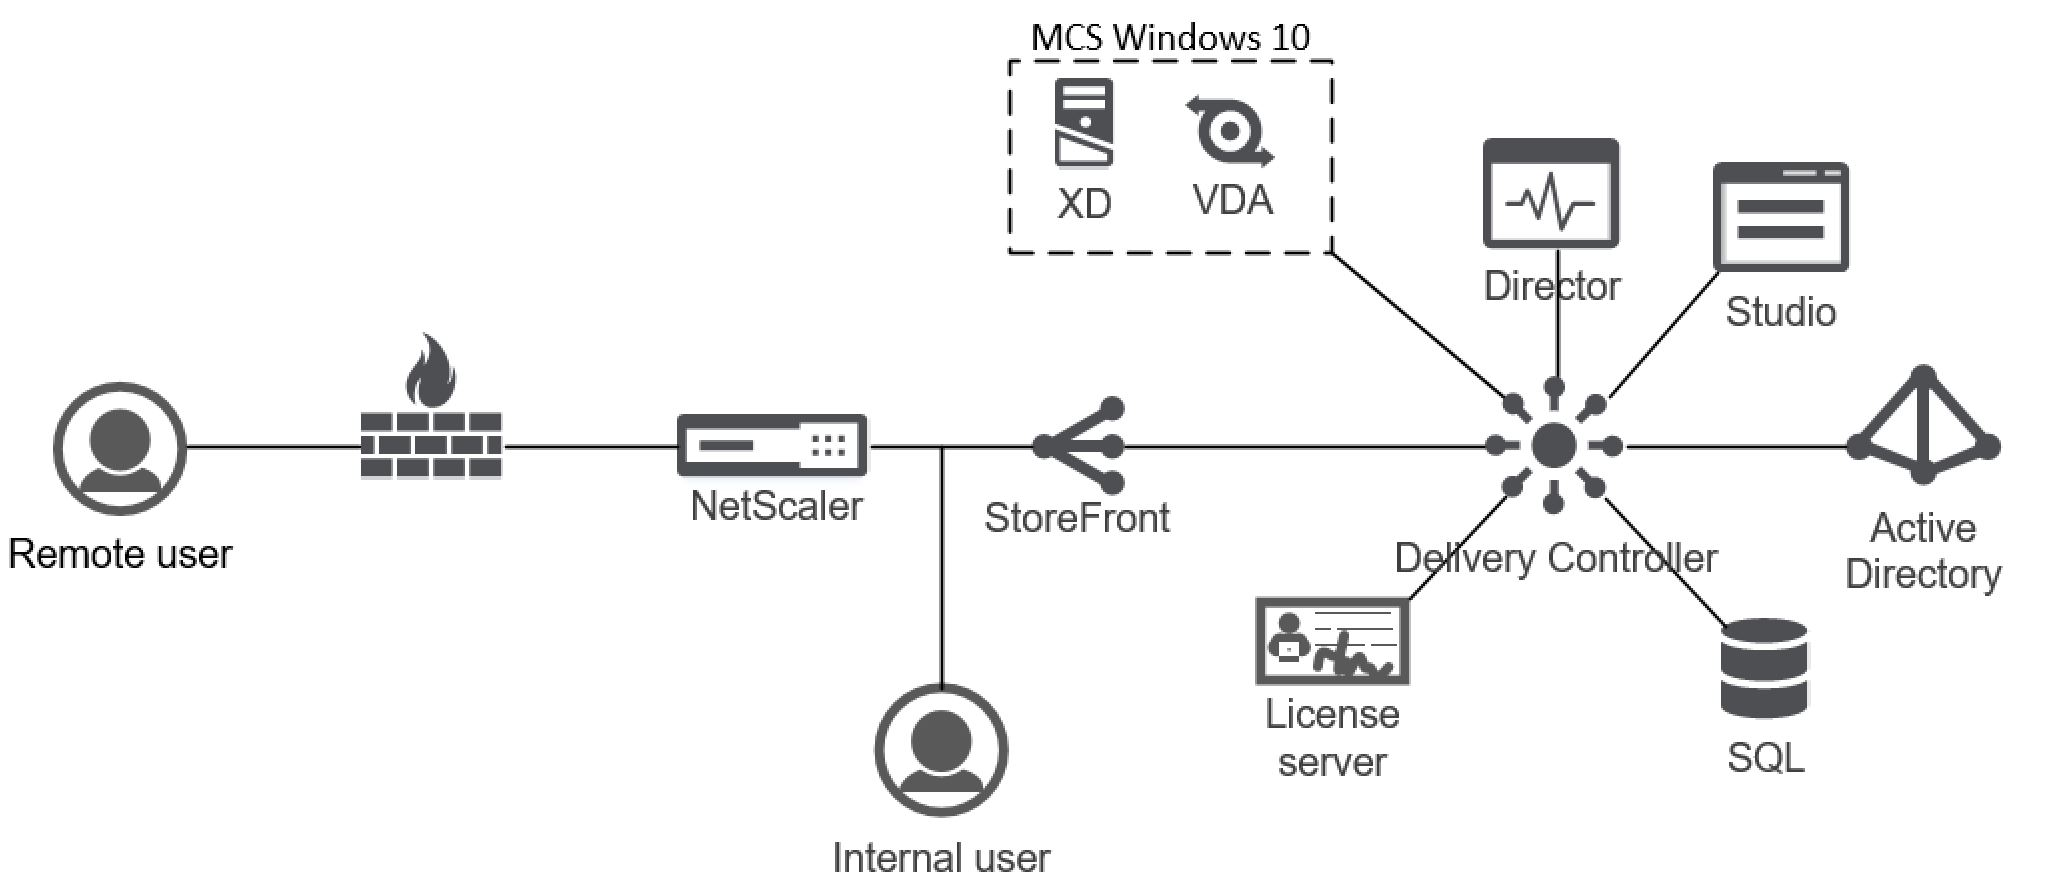 Visio MCS Citrix 7.13 incl SF